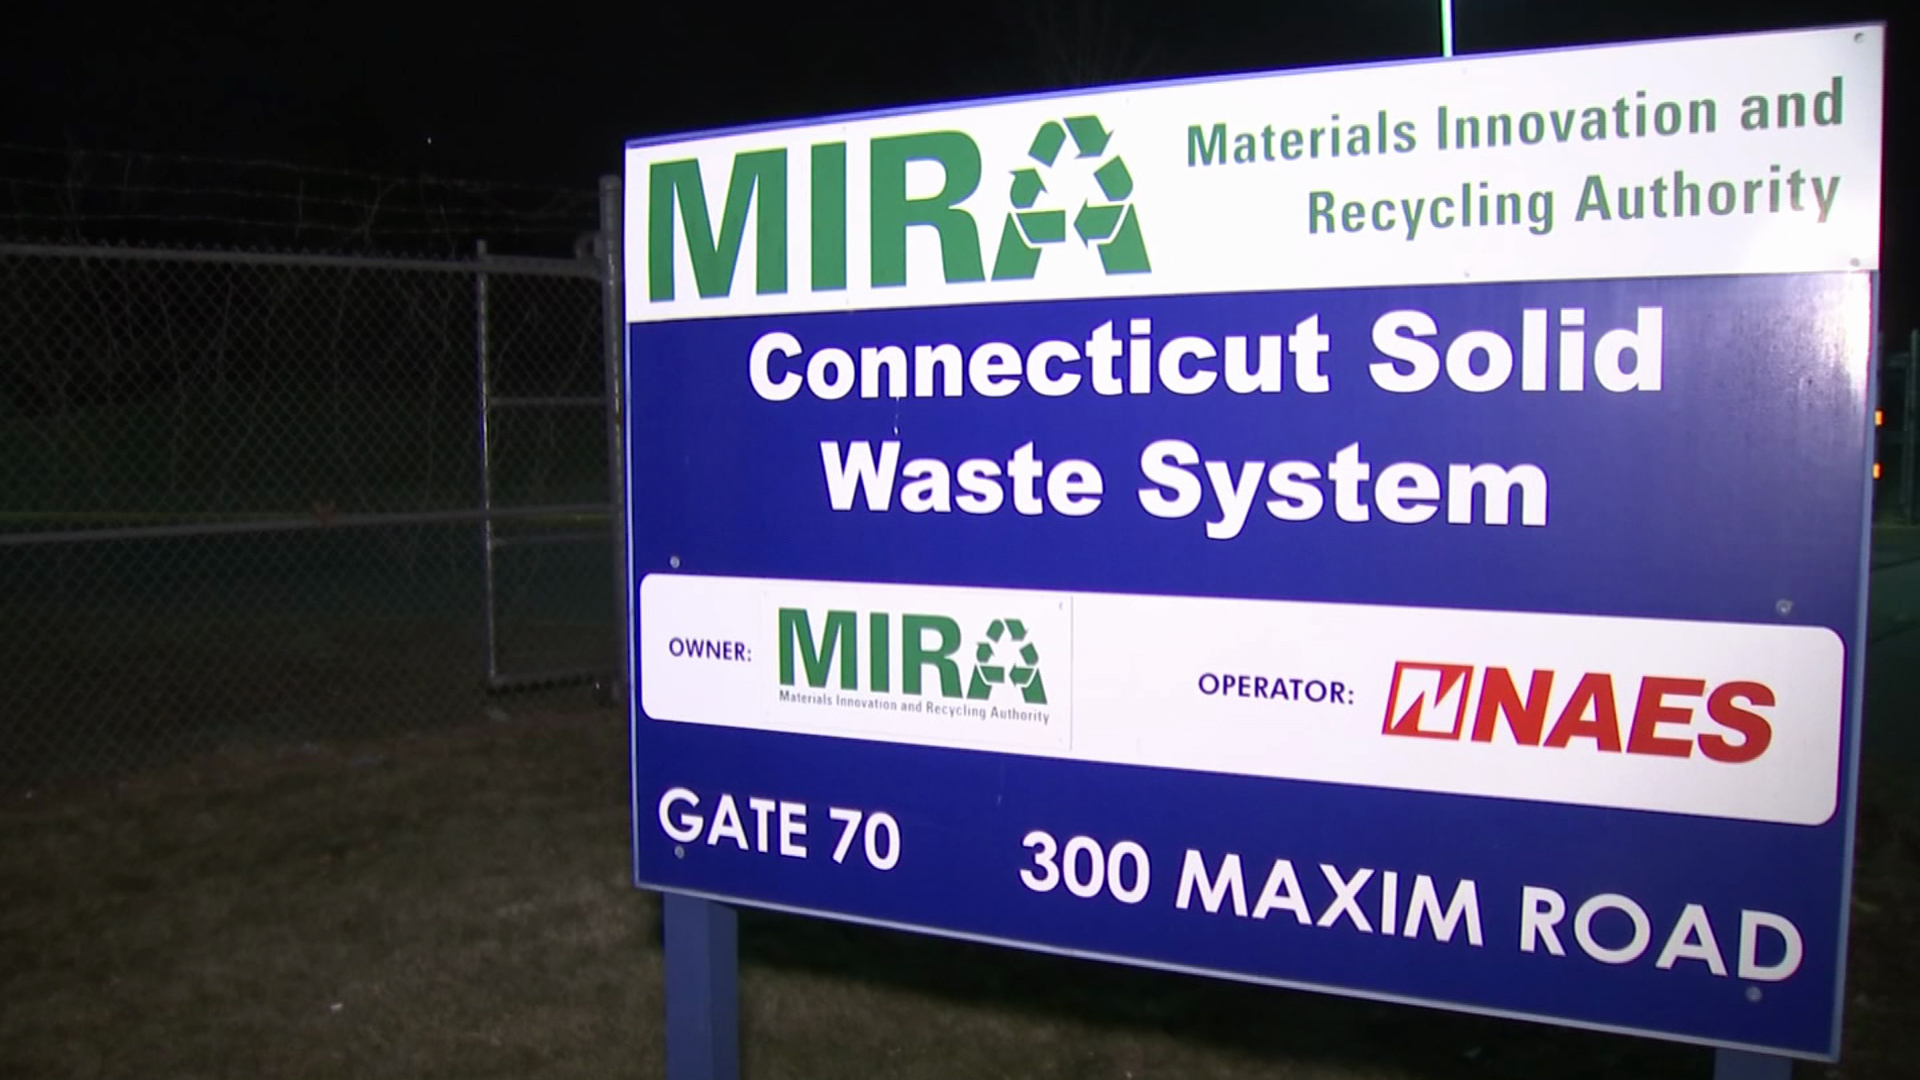 MIRA, a quasi-state entity, also known as Materials Innovation and Recycling Authority said their trash to energy plant sees around 750,000 tons of garbage each year.